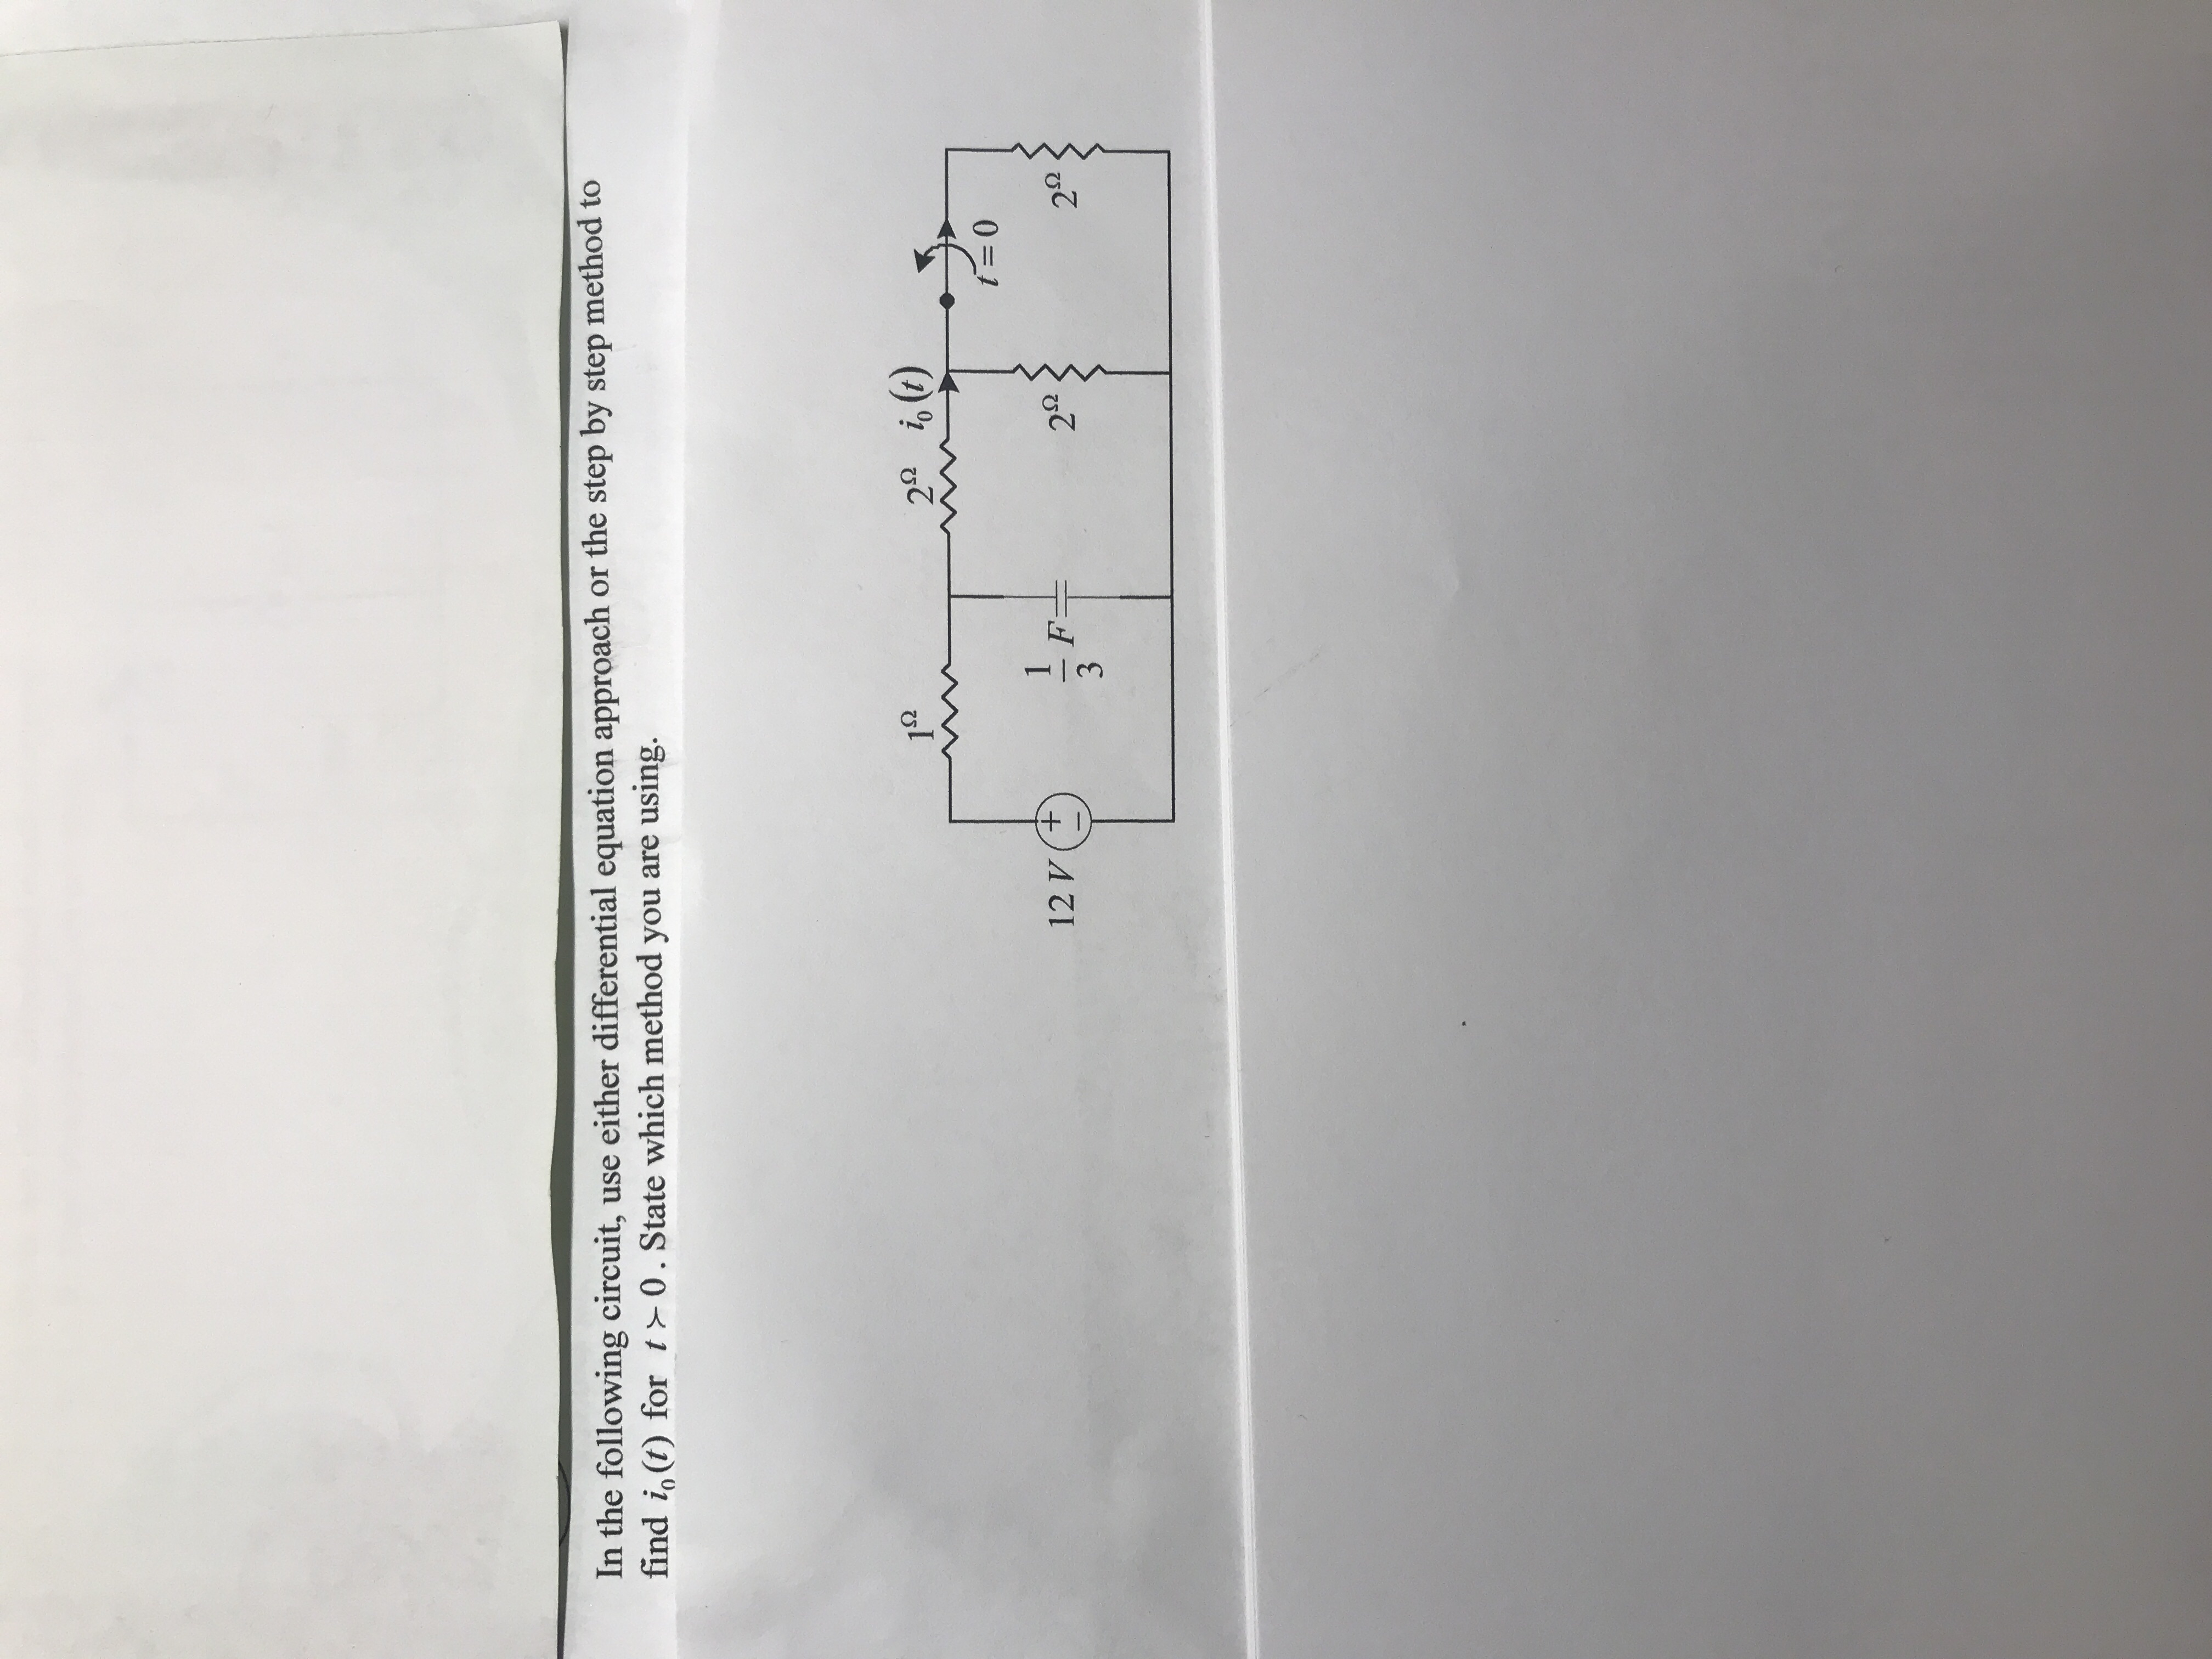 In the following circuit, use either differential equation approach or the step by step method to find i。(t) for t 0 . State which method you are using. 1s2 29 る(1) 12 V(+ 2Ω 2Ω